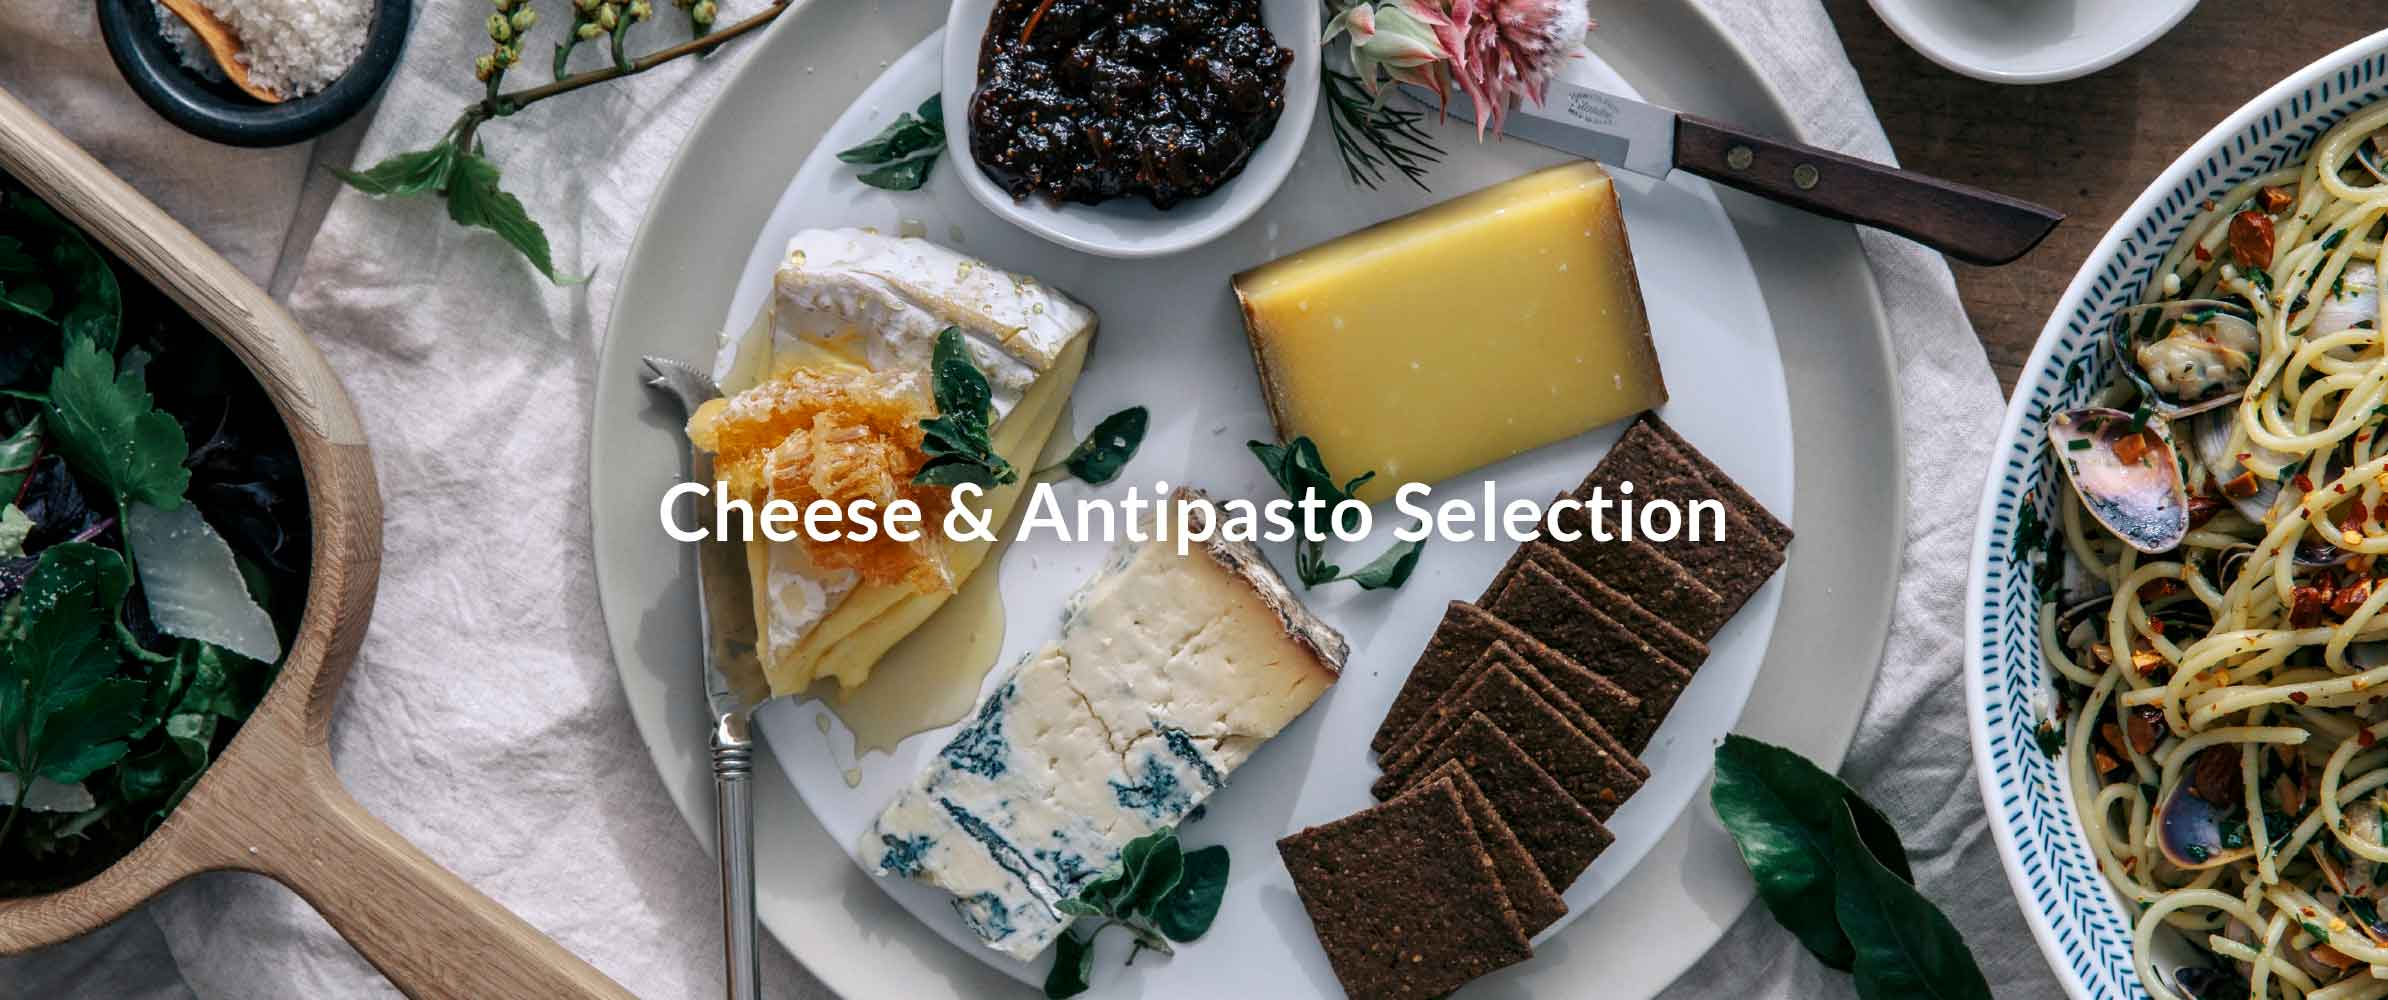 Cheese & Antipasto Selection